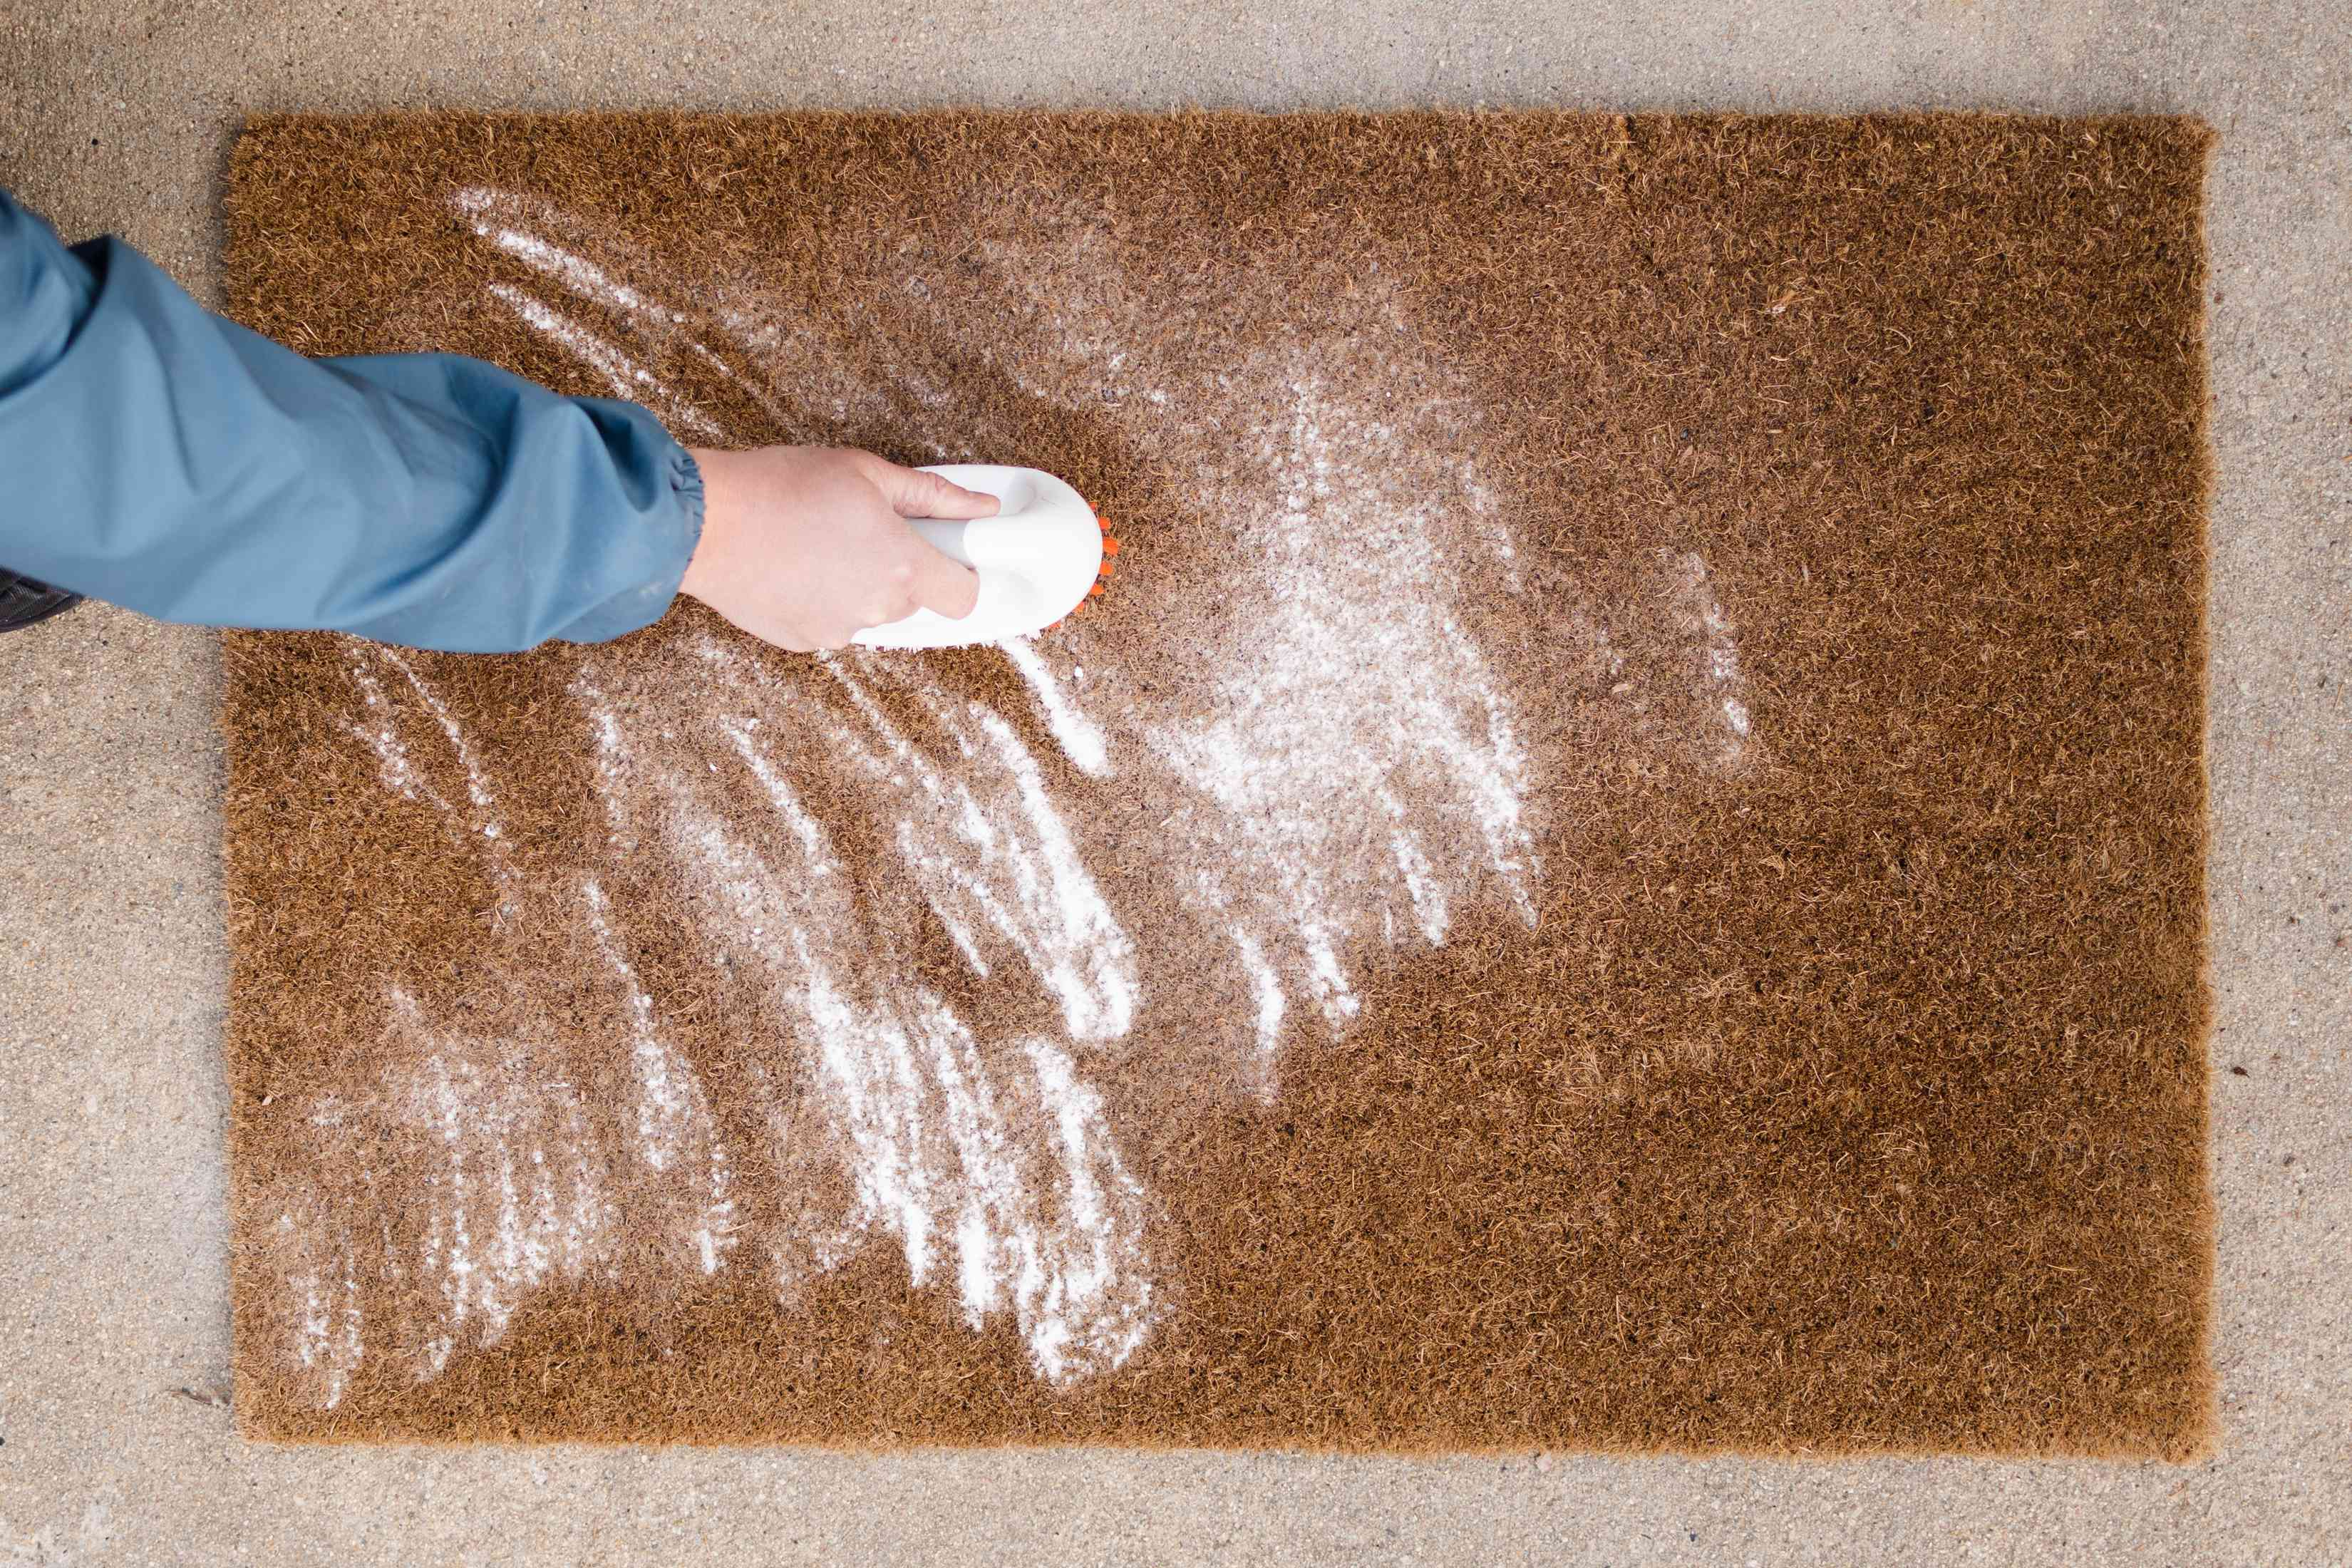 Baking soda sprinkled on brown doormat and brushed through to remove odors